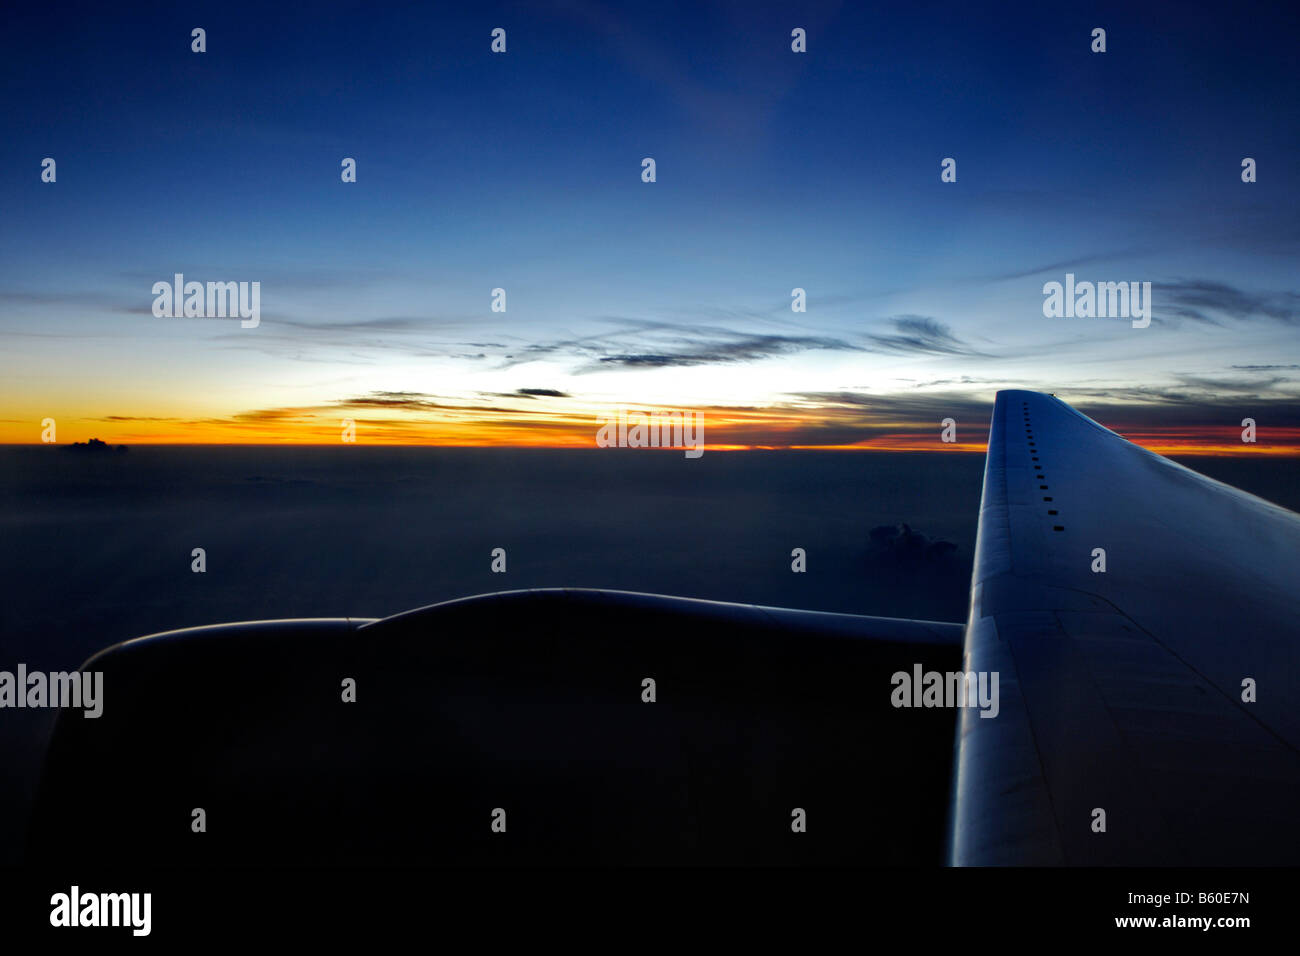 Sunset, view from window of an airplane near Singapore, Singapore, Asia Stock Photo